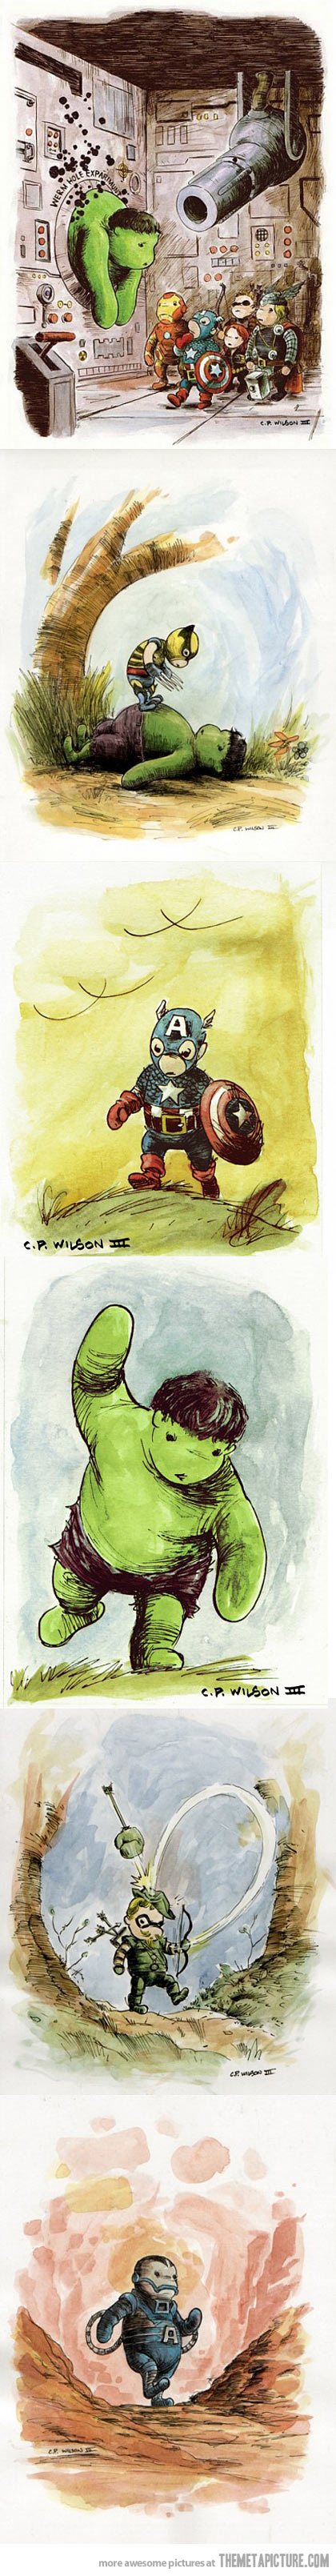 The Avengers in the style of Winnie the Pooh…